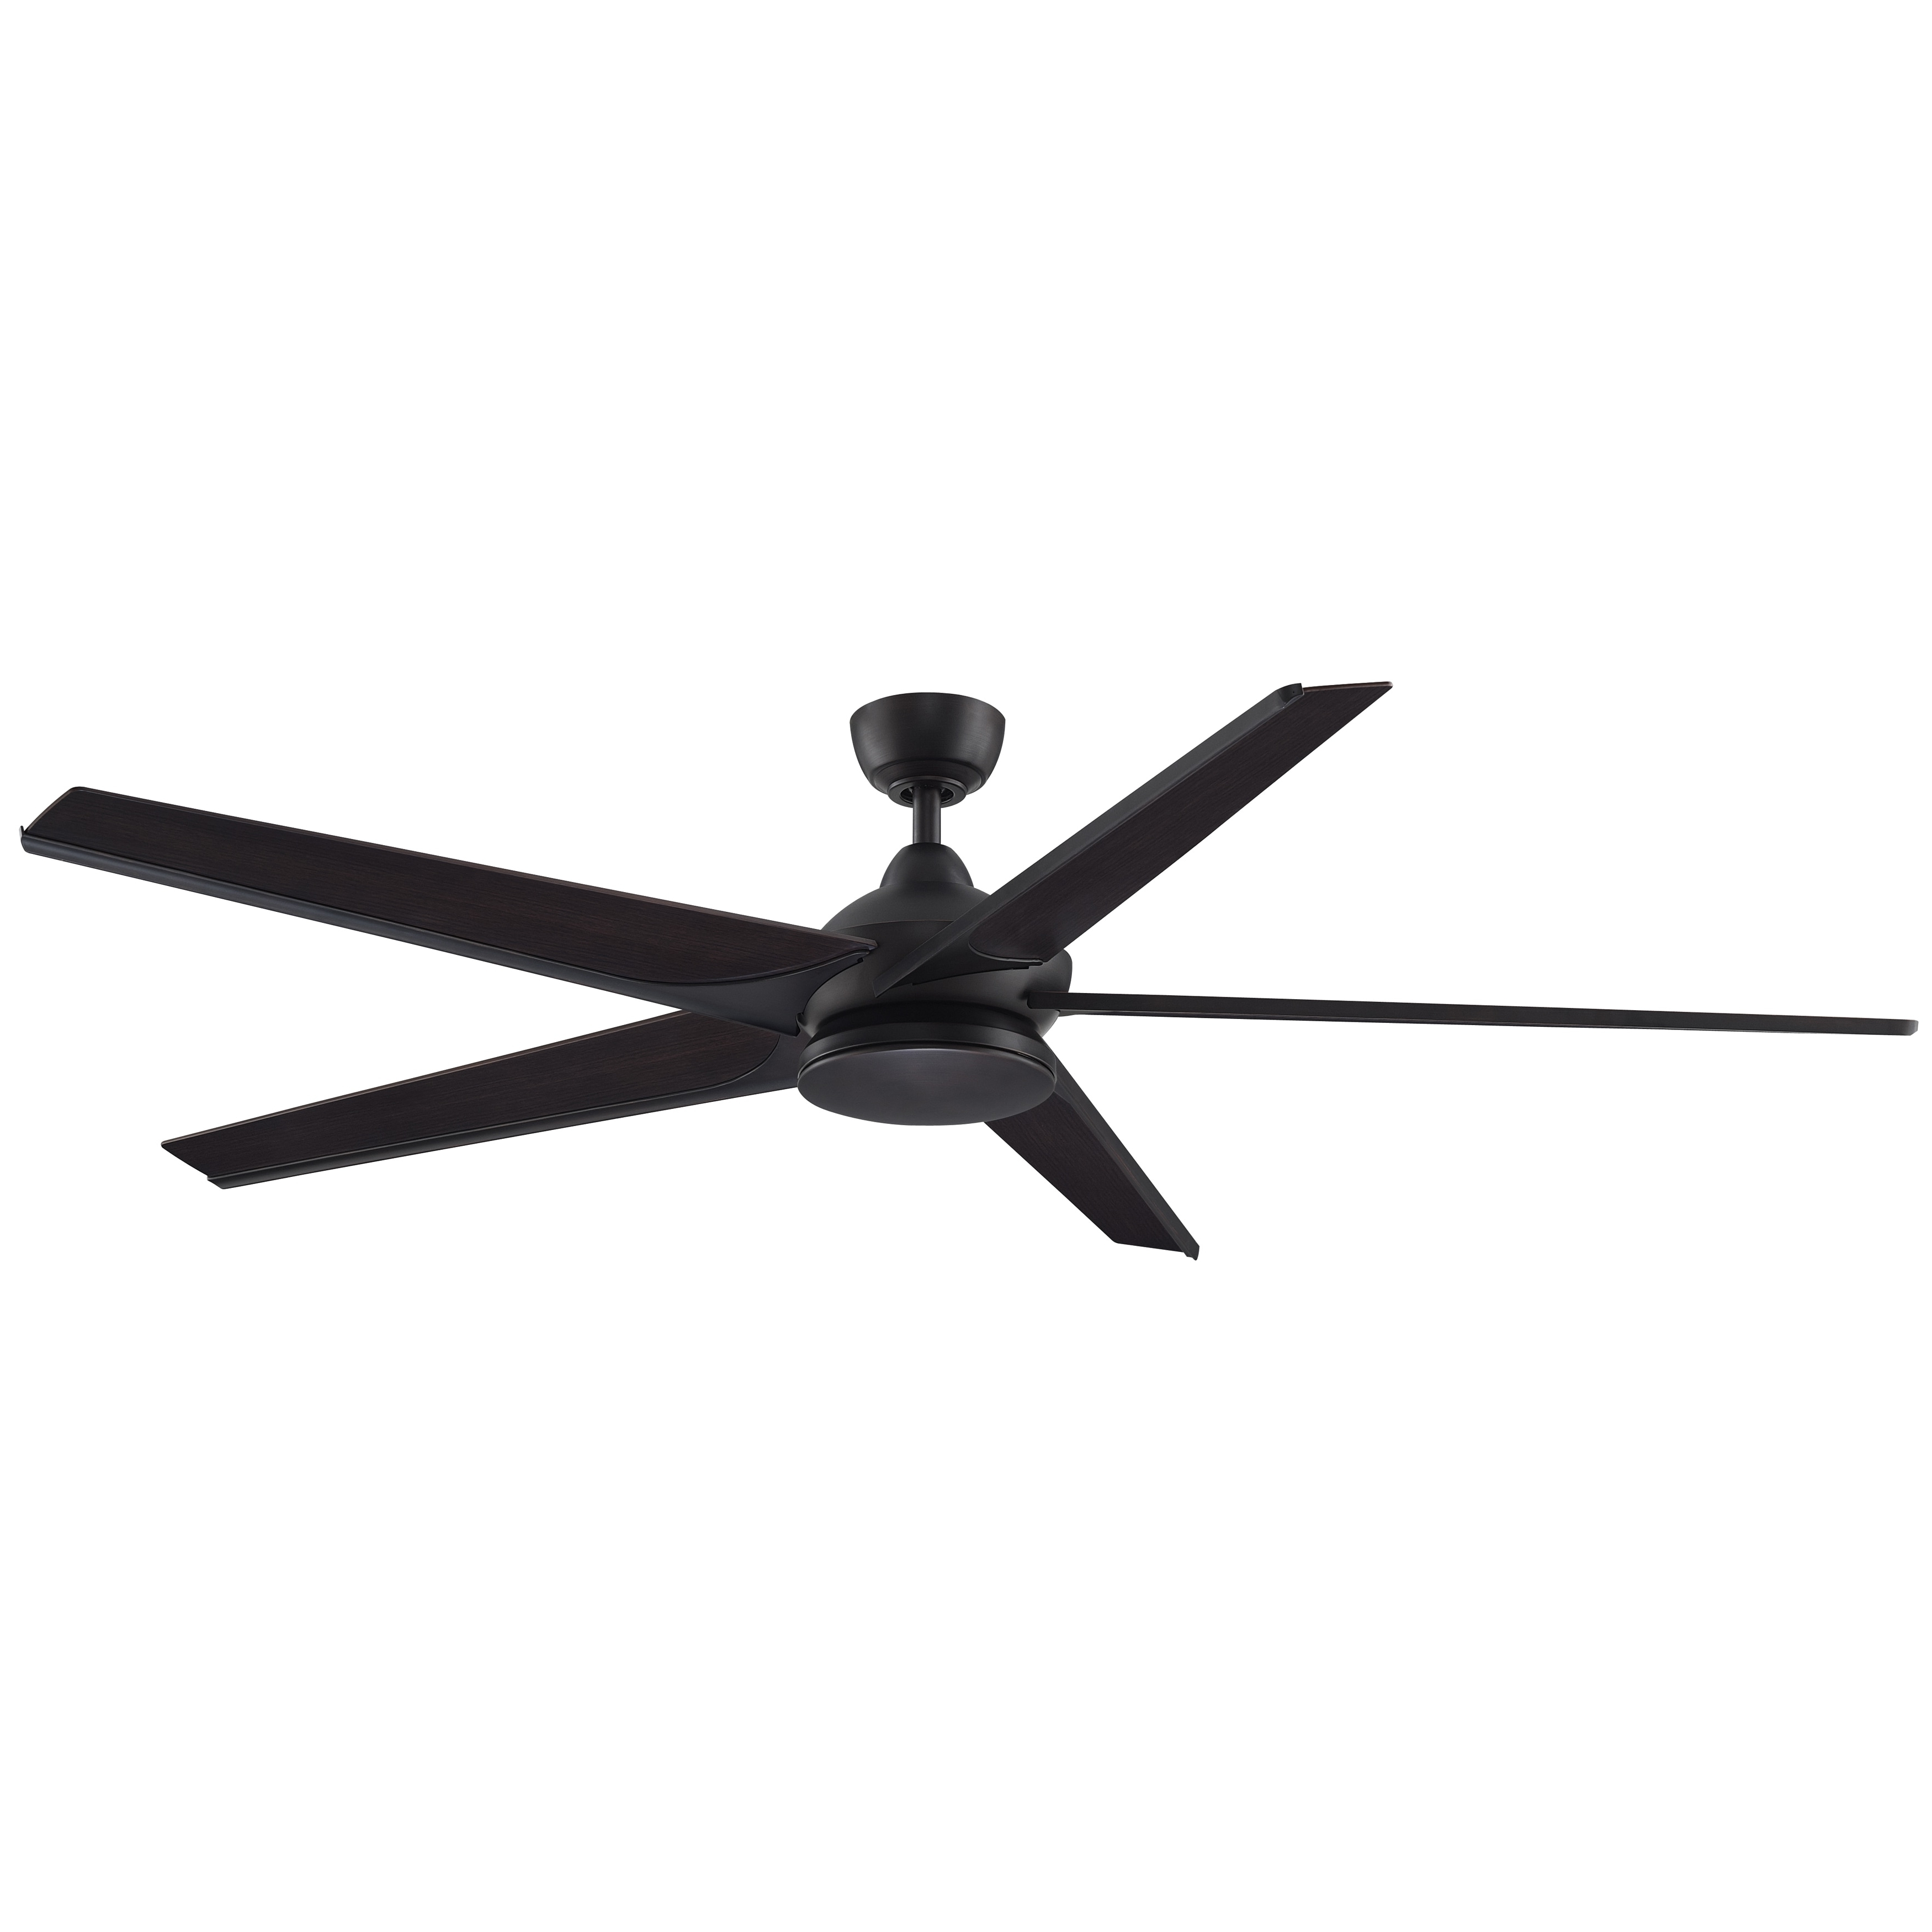 Shop Fanimation Subtle 72 Inch Ceiling Fan – Free Shipping Today In Best And Newest 72 Inch Outdoor Ceiling Fans (View 3 of 20)